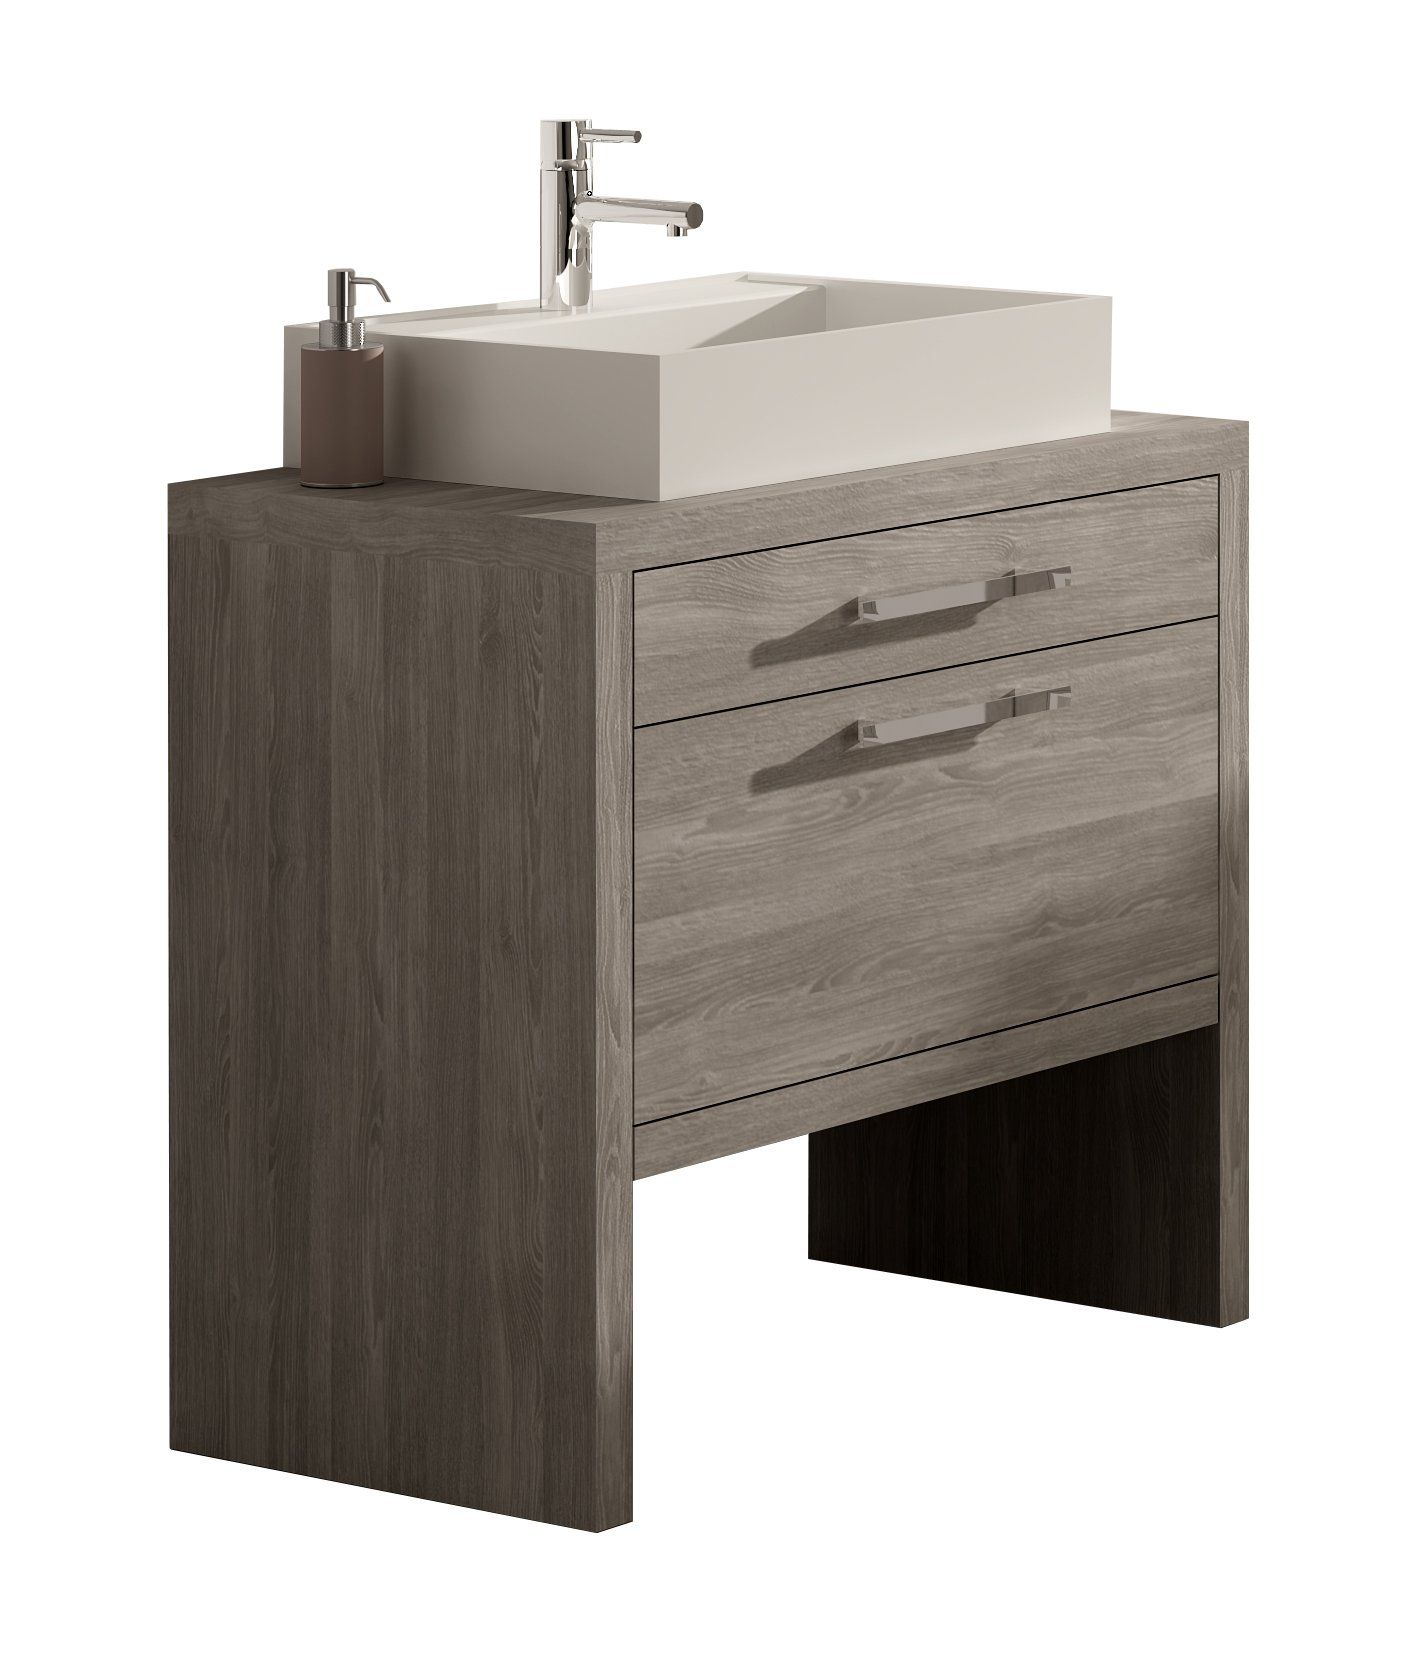 most with and classy sink bathroom full daily qld modern inexpensive in idea of brisbane vanity inch double best uk simple popular size interior trends house cabinet cool x traditional drawers white top decorating design units vanities bath home